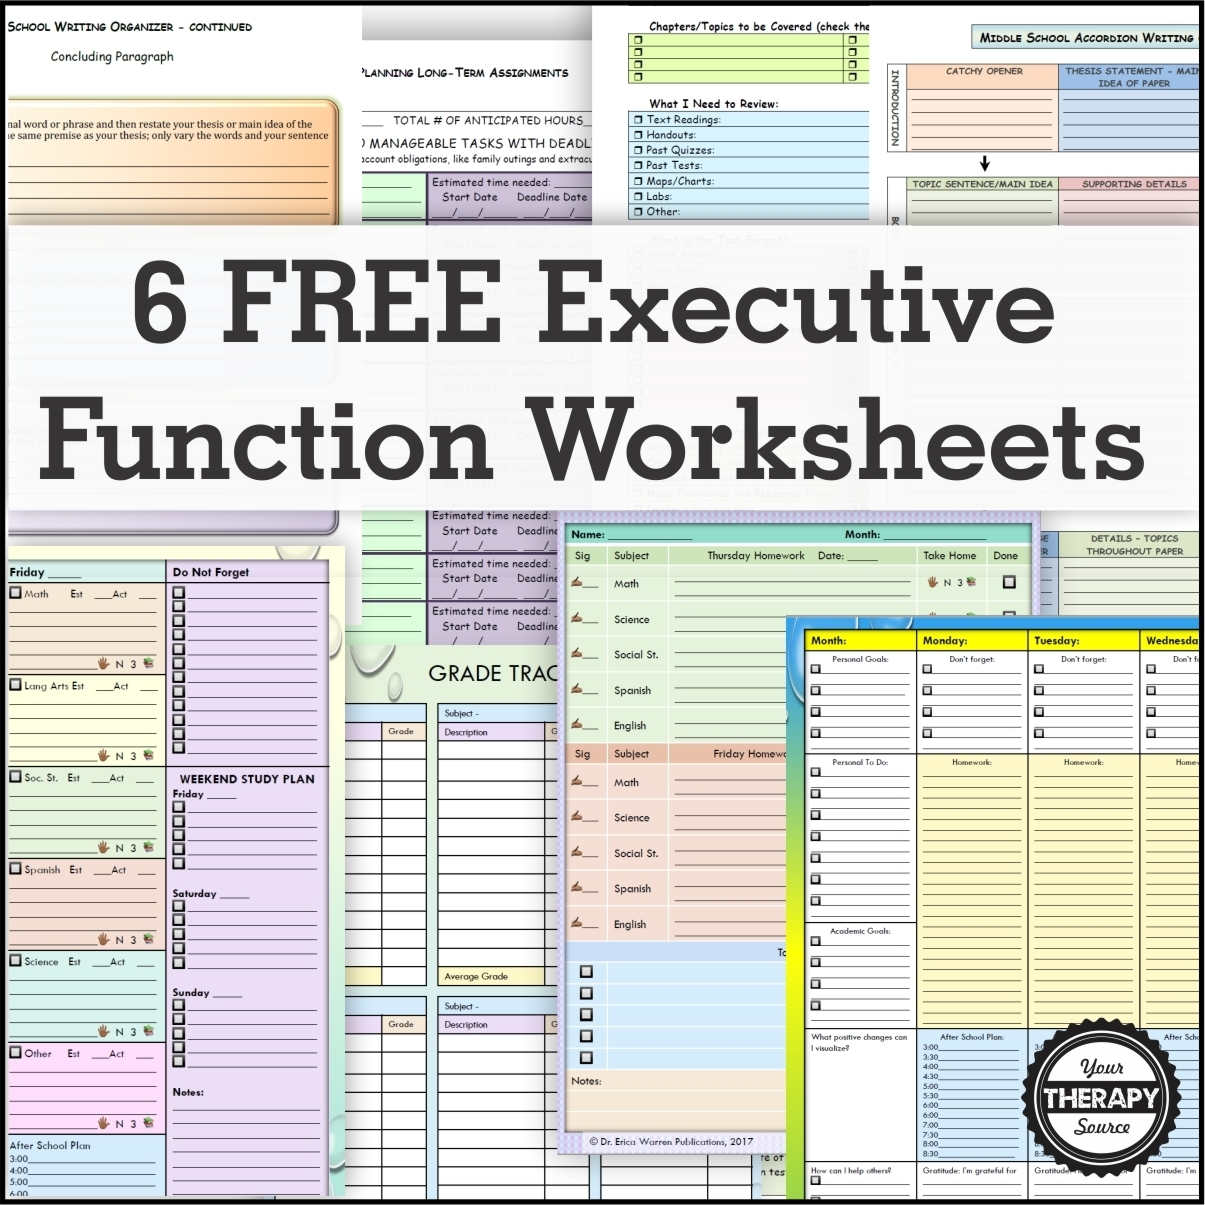 6 Free Executive Functioning Activity Worksheets - Your